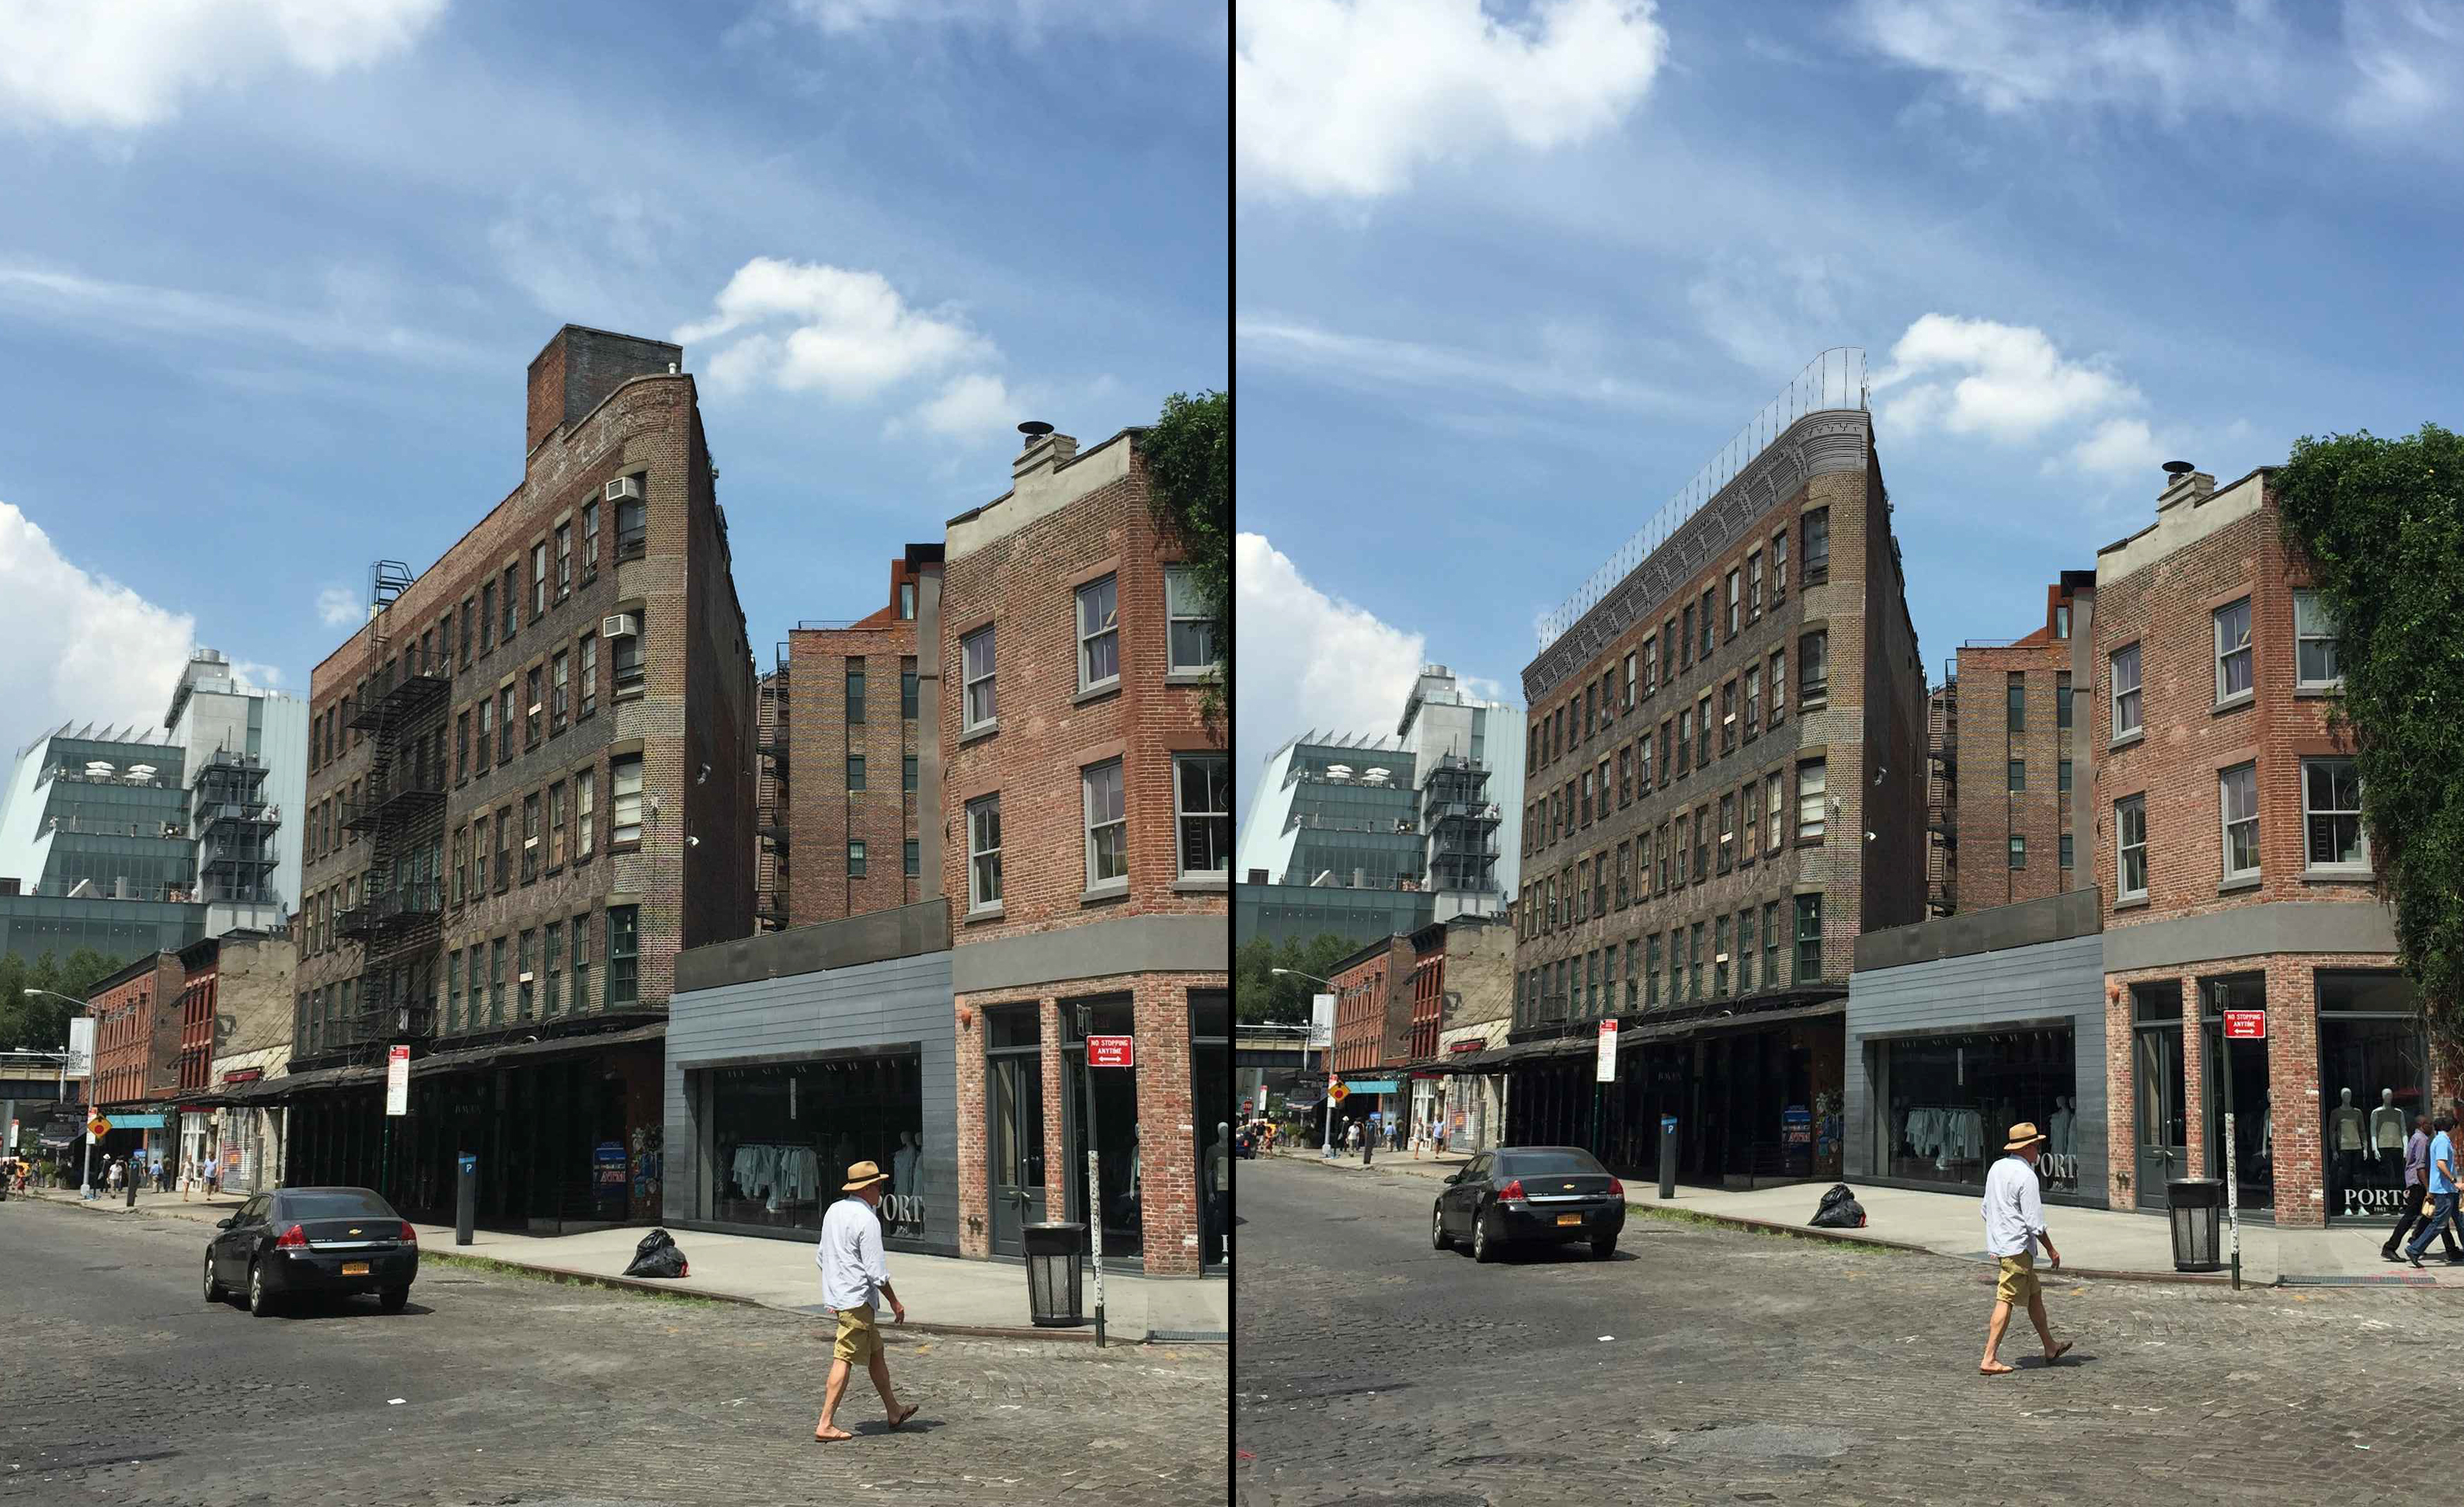 55 Gansevoort Street, existing conditions (left) and with fire escape removed and cornice and windscreen added (right)